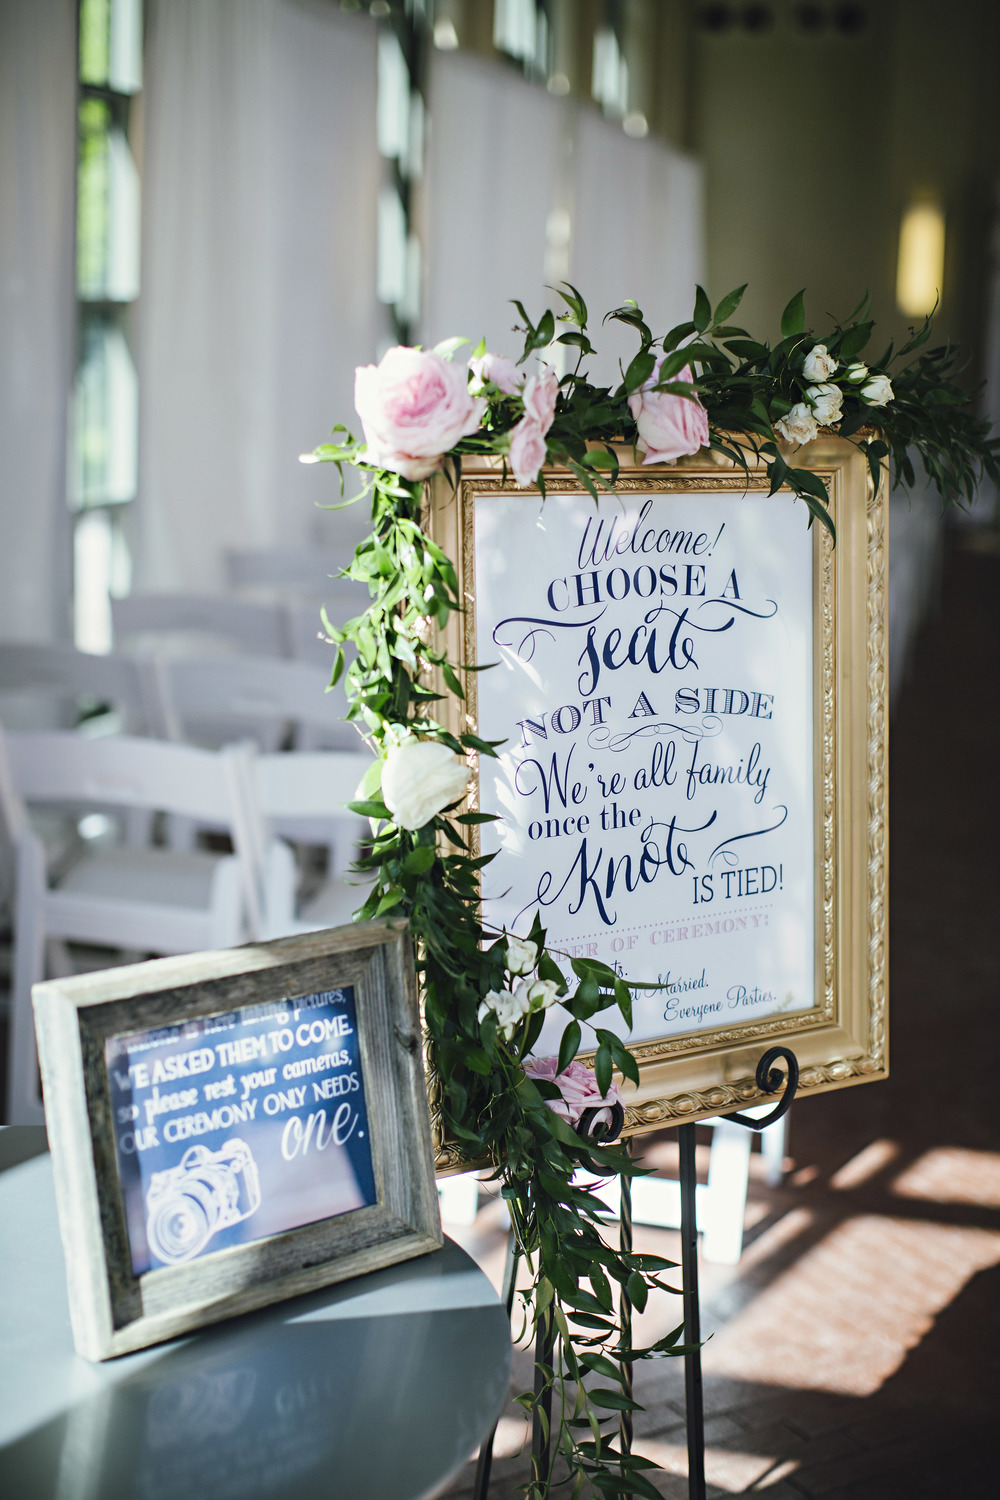 Altar Ego Paperie Ceremony Seating and Unplugged Wedding Signs